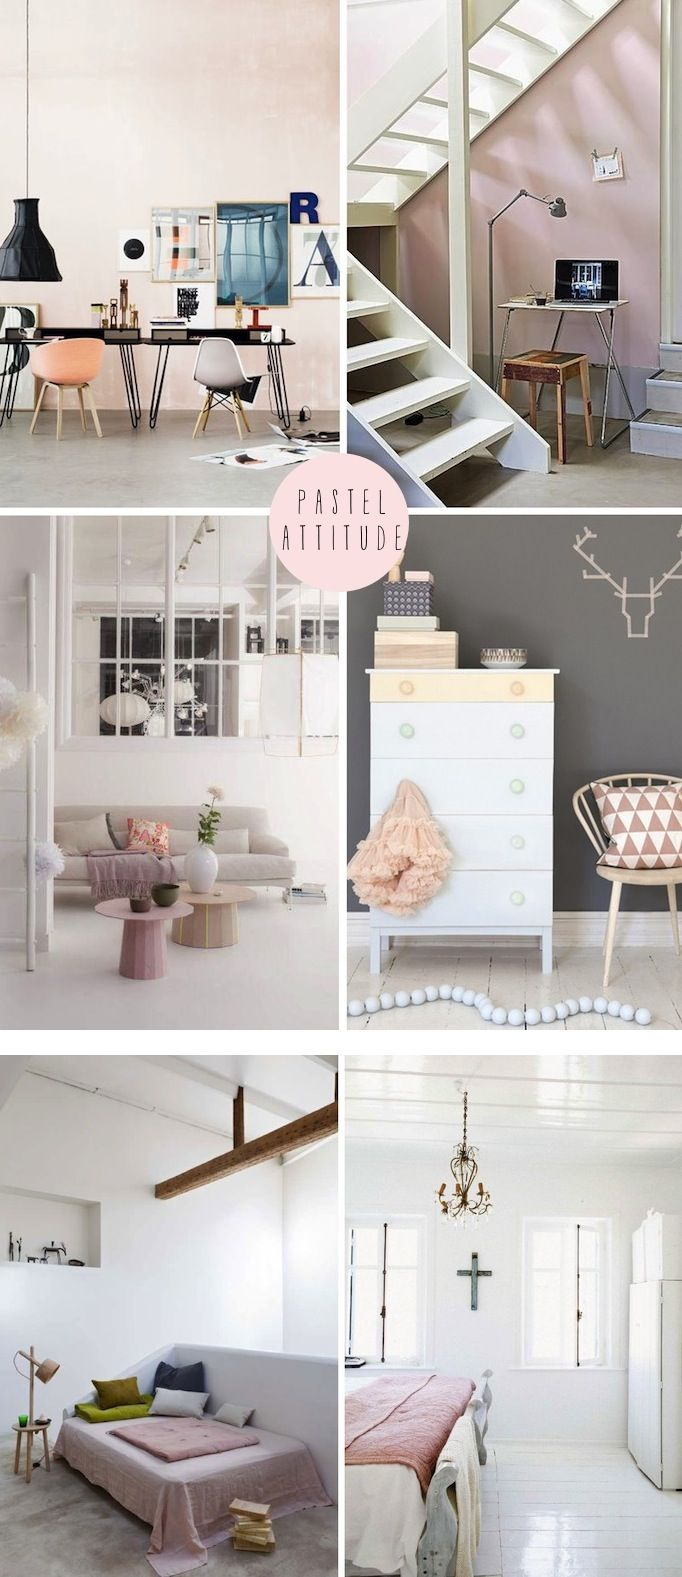 Choosing the paint colour for any direction room angela bunt - French By Design Pastel Attitude